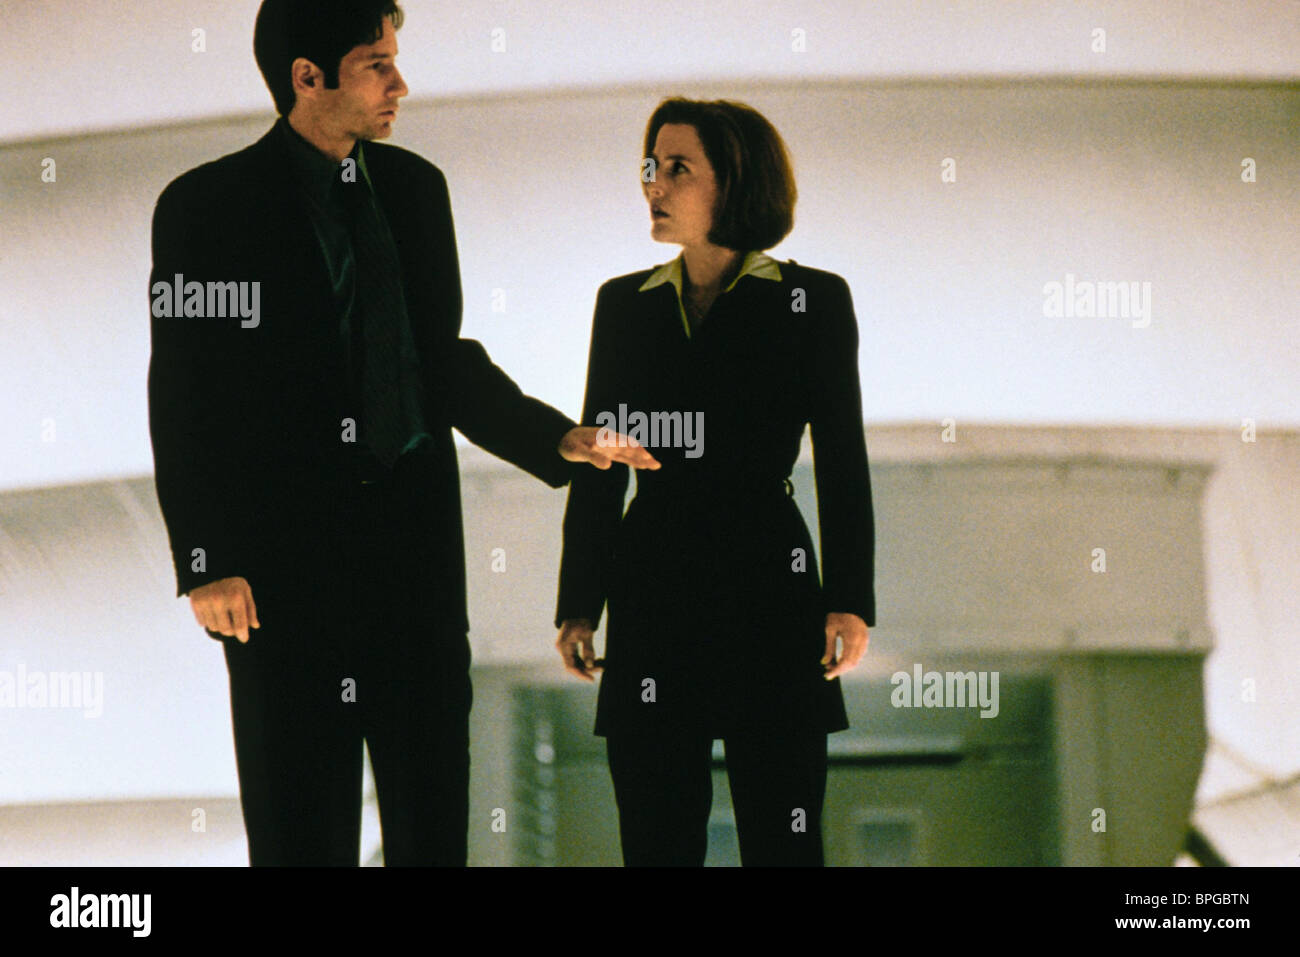 David Duchovny Gillian Anderson The X Files 1998 Stock Photo Alamy